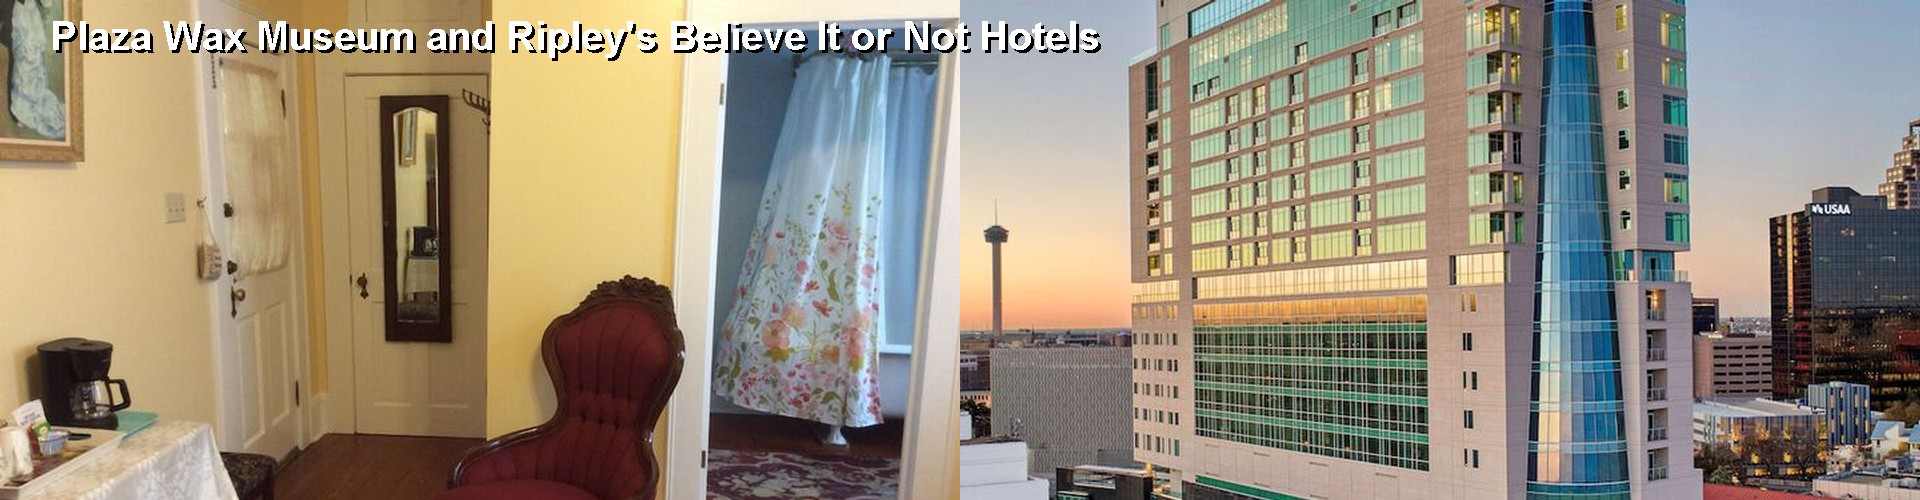 5 Best Hotels near Plaza Wax Museum and Ripley's Believe It or Not